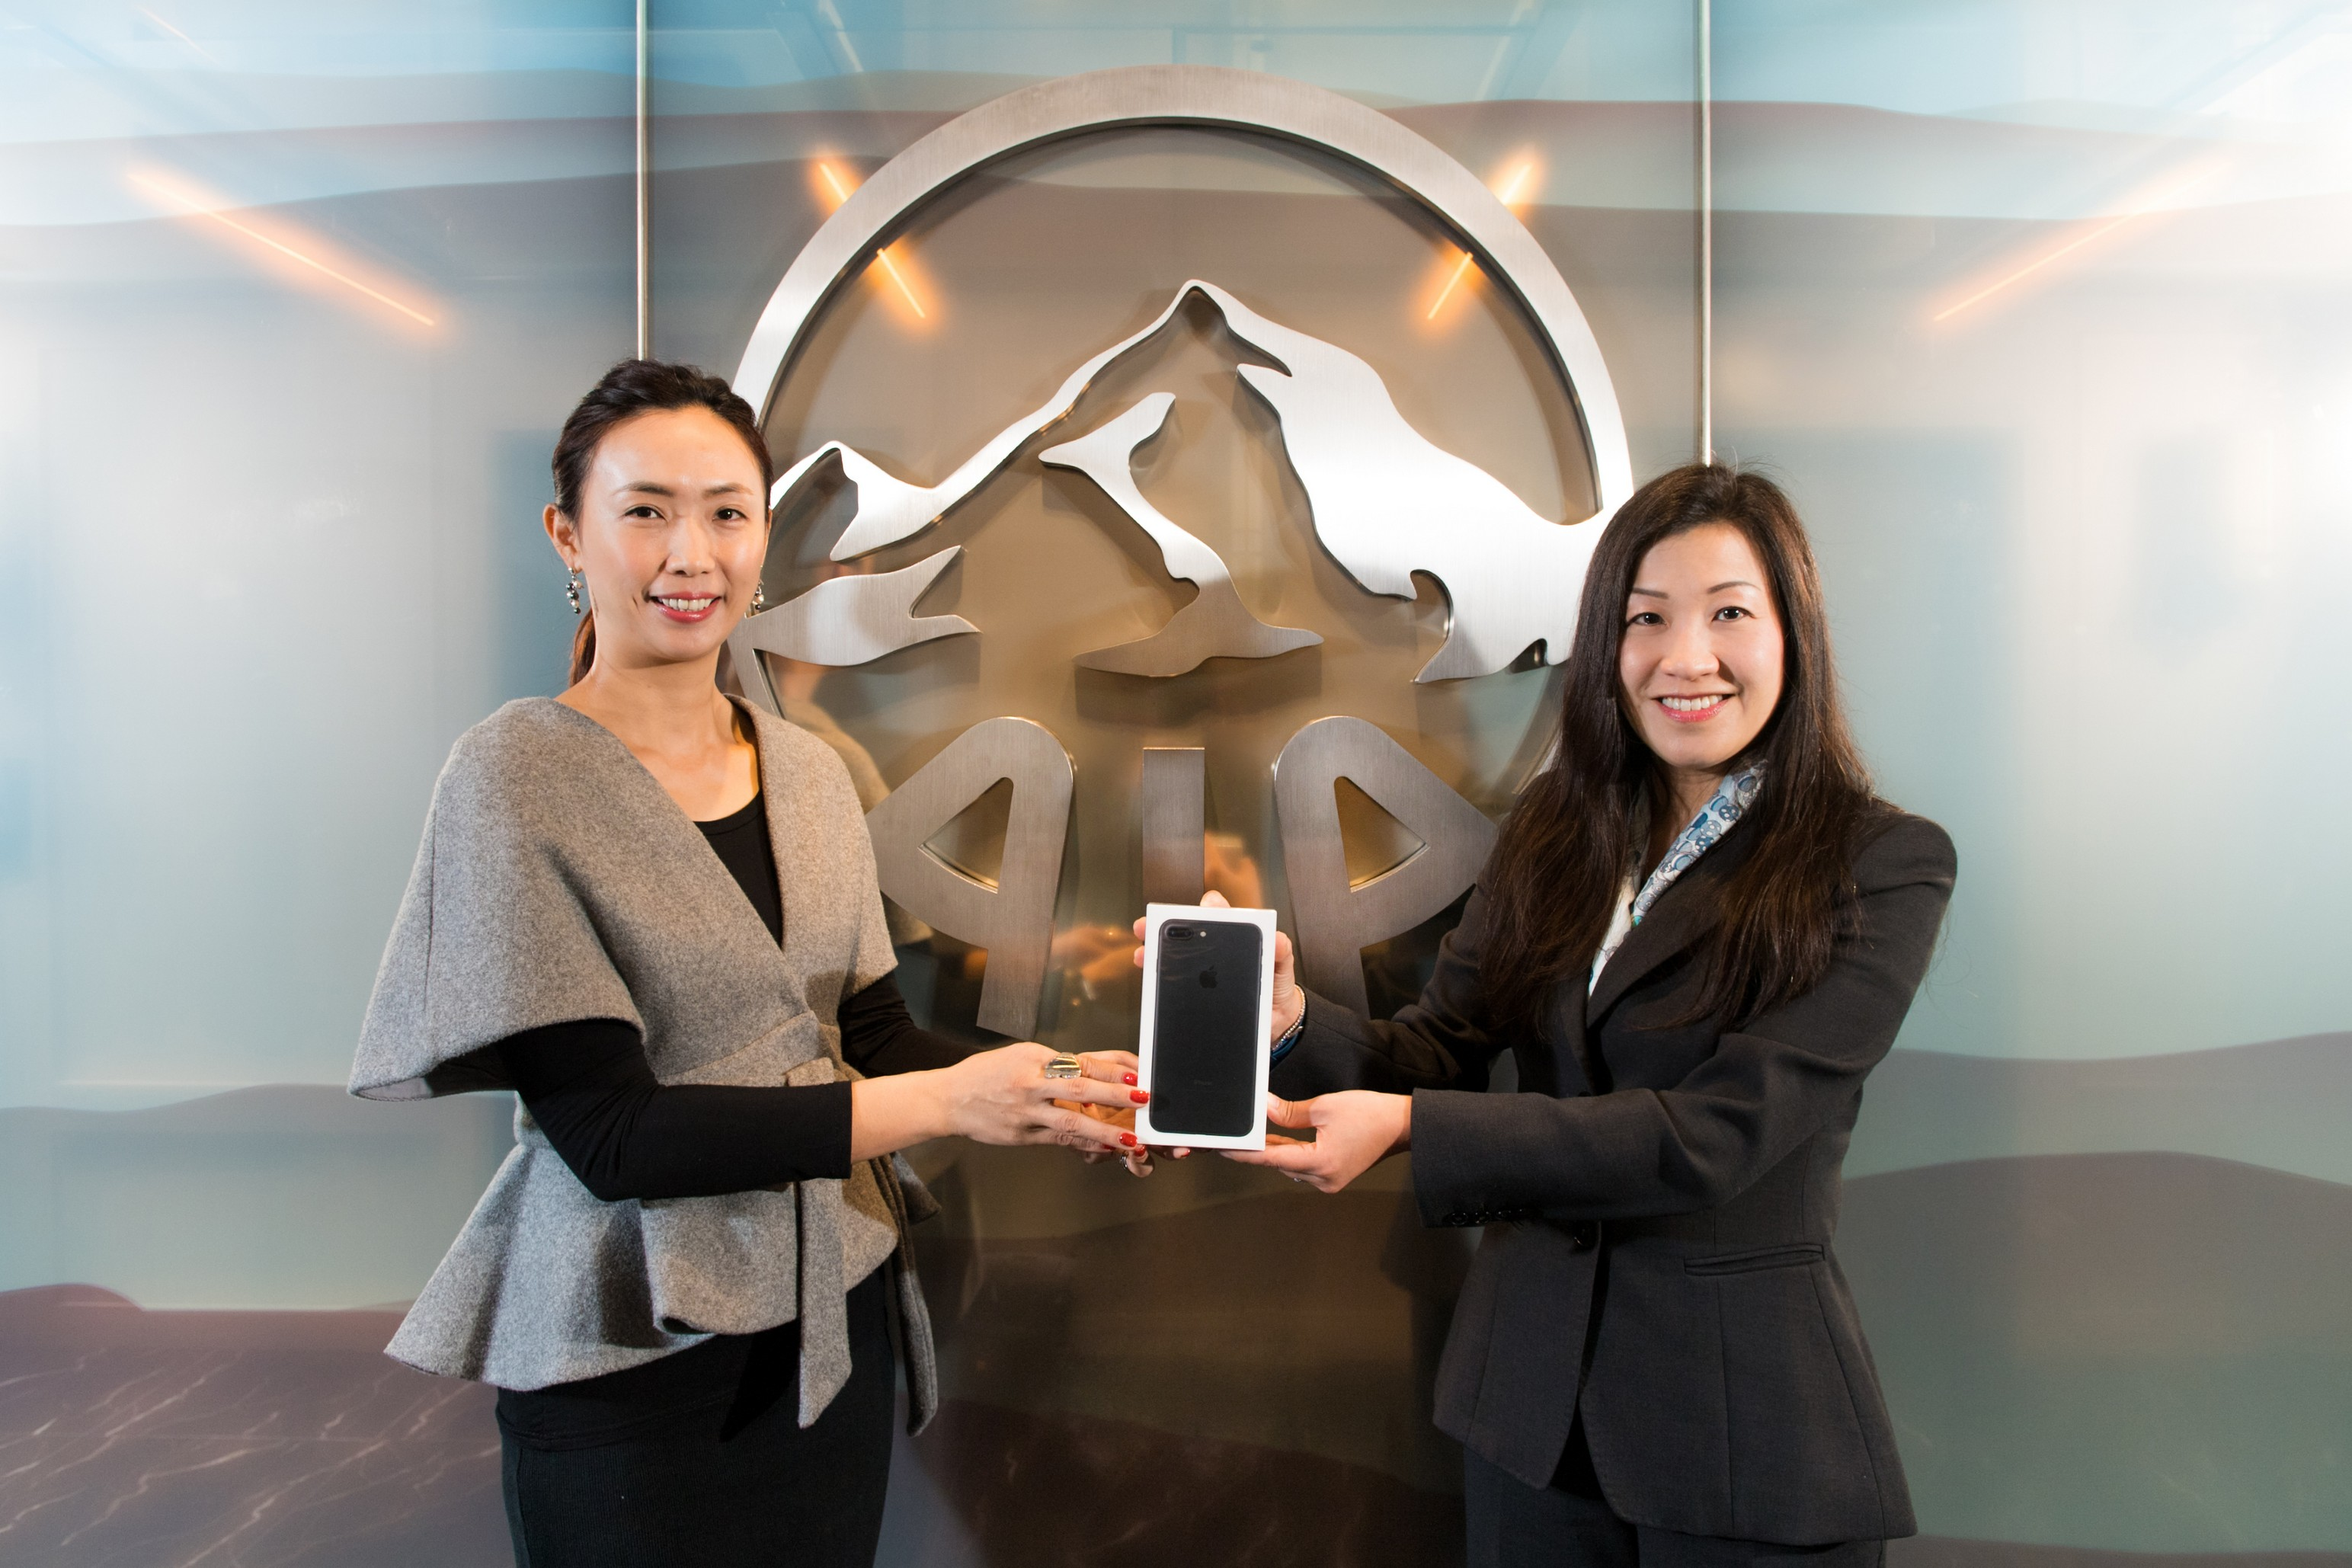 Ms Bonnie Tse, General Manager, Business Strategy and Marketing of AIA Hong Kong & Macau (right) presents the latest smartphones to the two winners of the first week's AIA Vitality Weekly Challenge Lucky Draw.